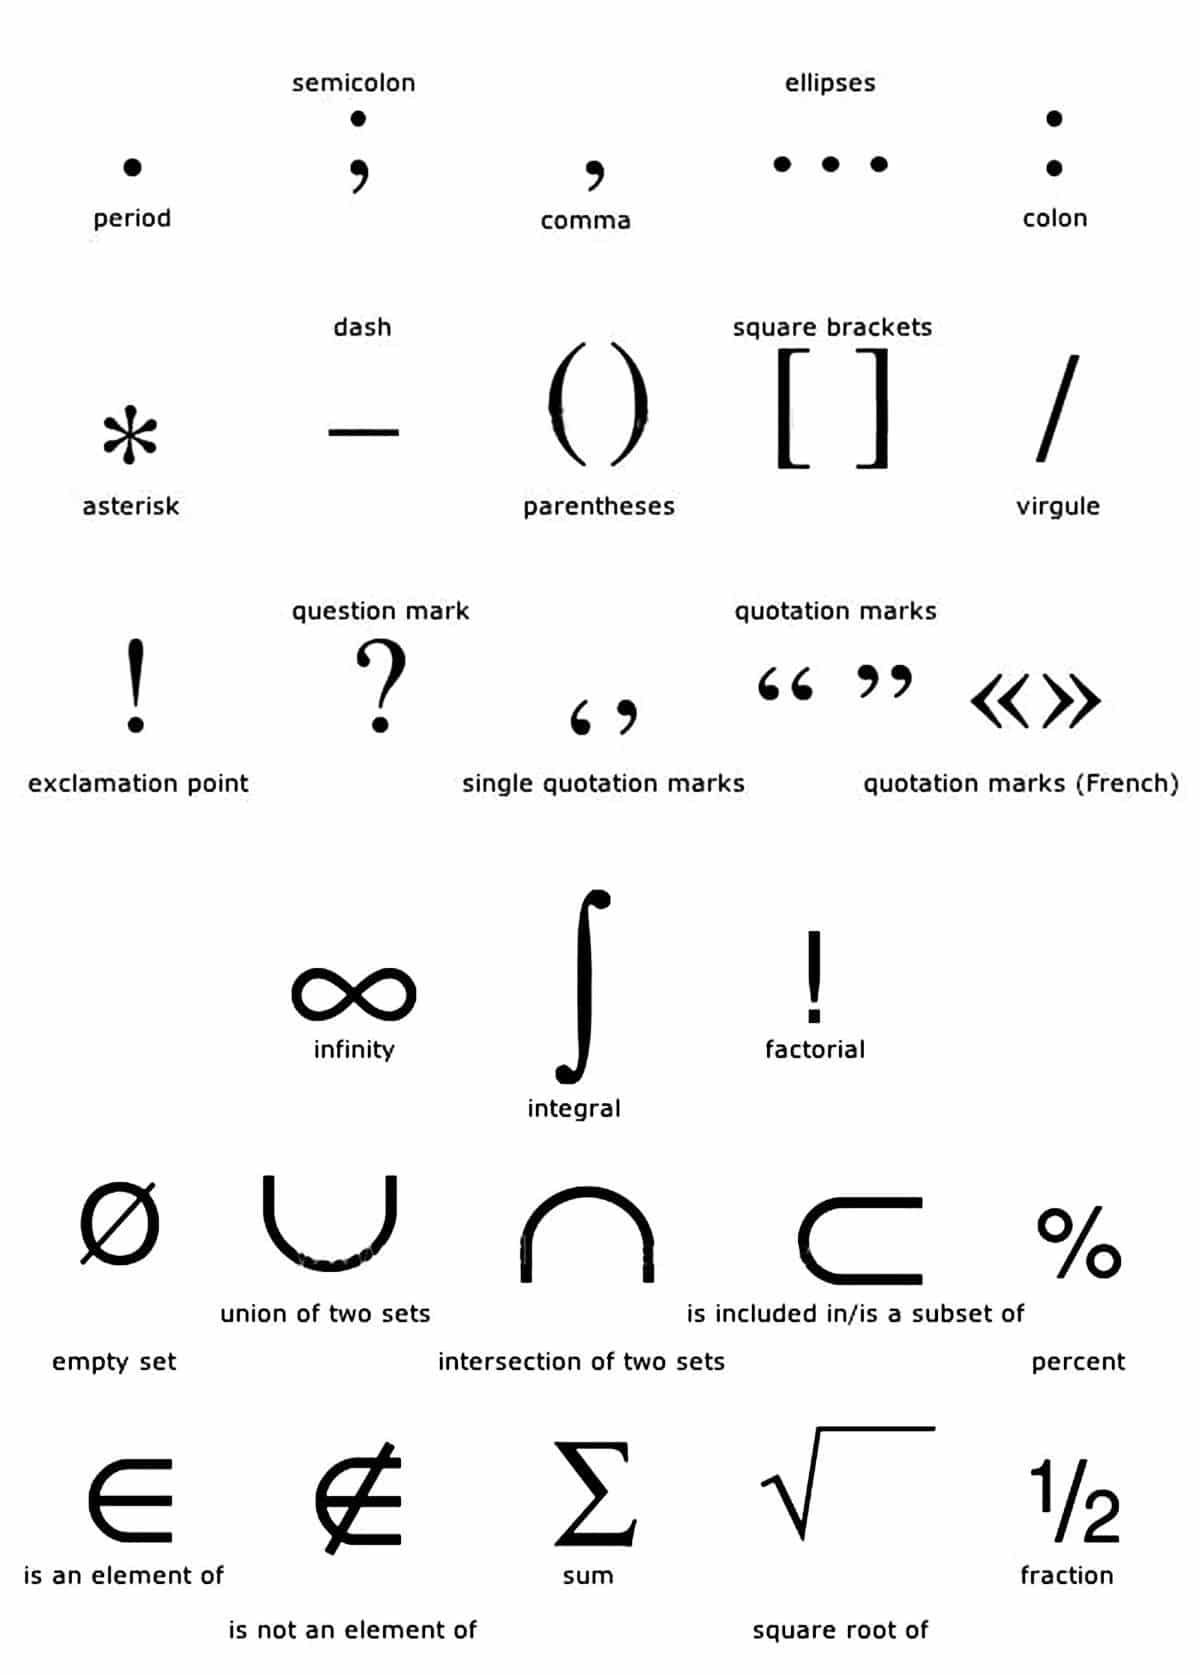 Punctuation Marks, Keyboard and Math Symbols in English